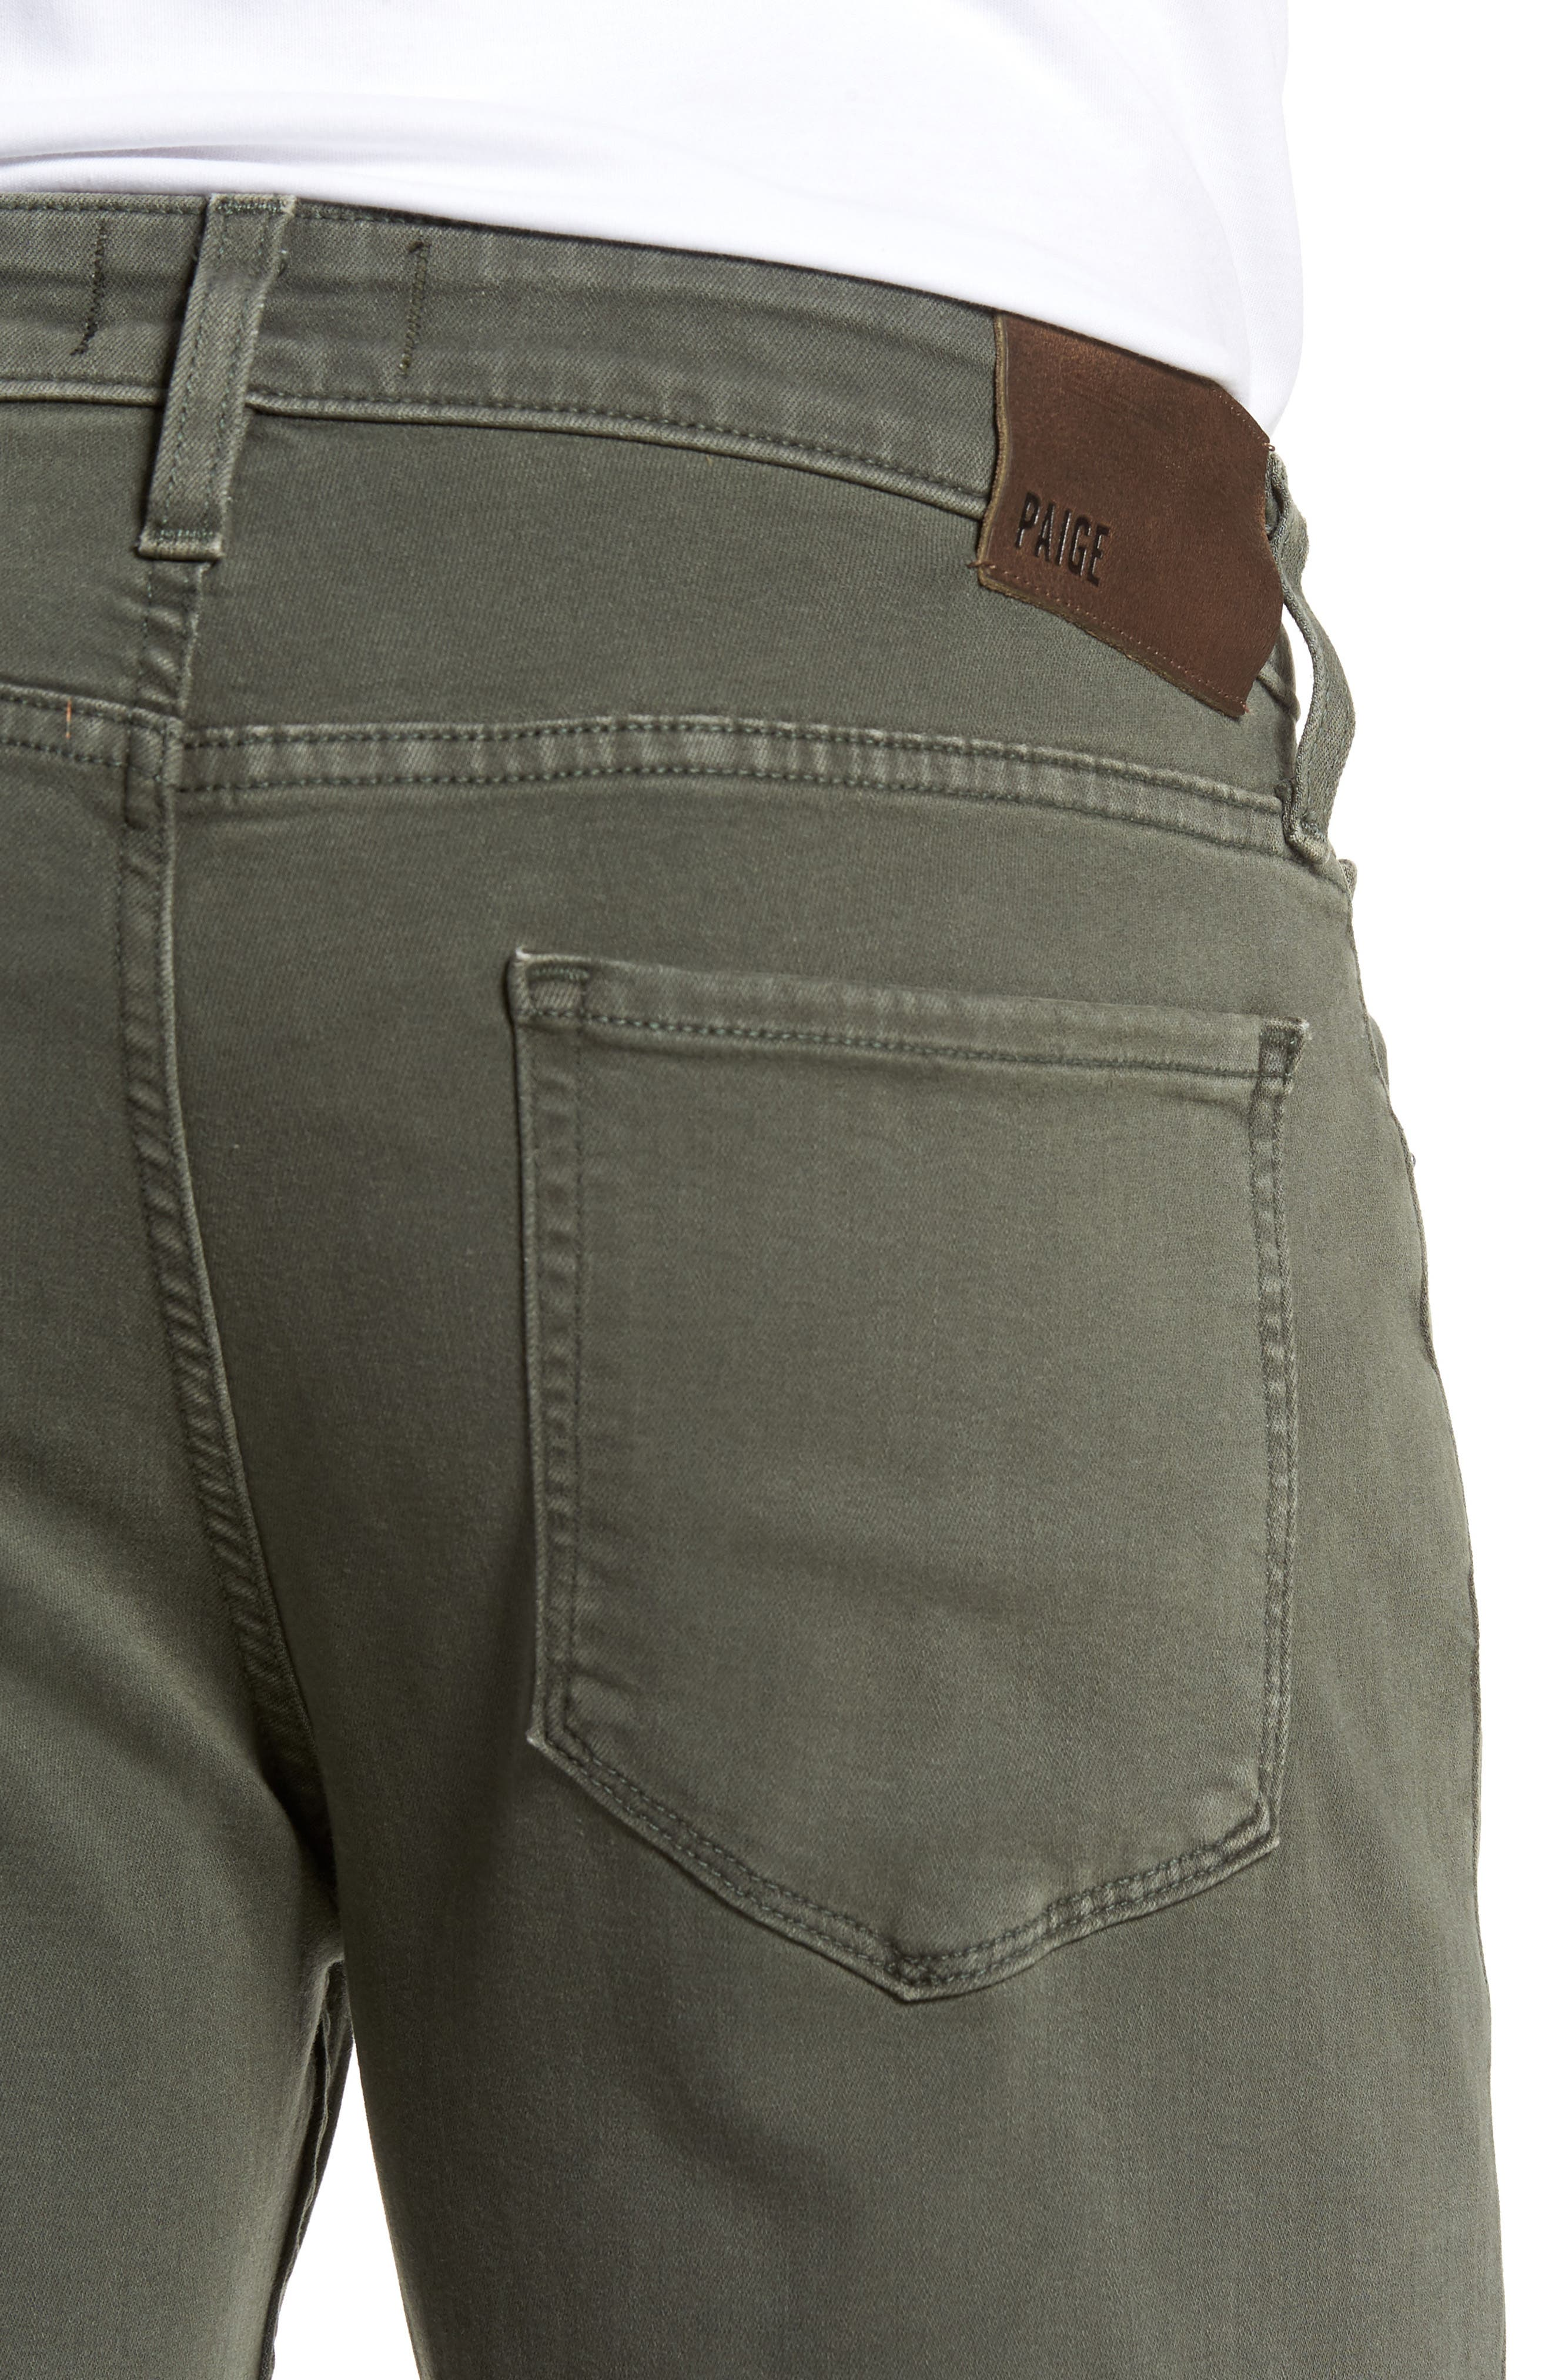 Transcend - Federal Slim Straight Leg Jeans,                             Alternate thumbnail 4, color,                             Vintage Green Fields